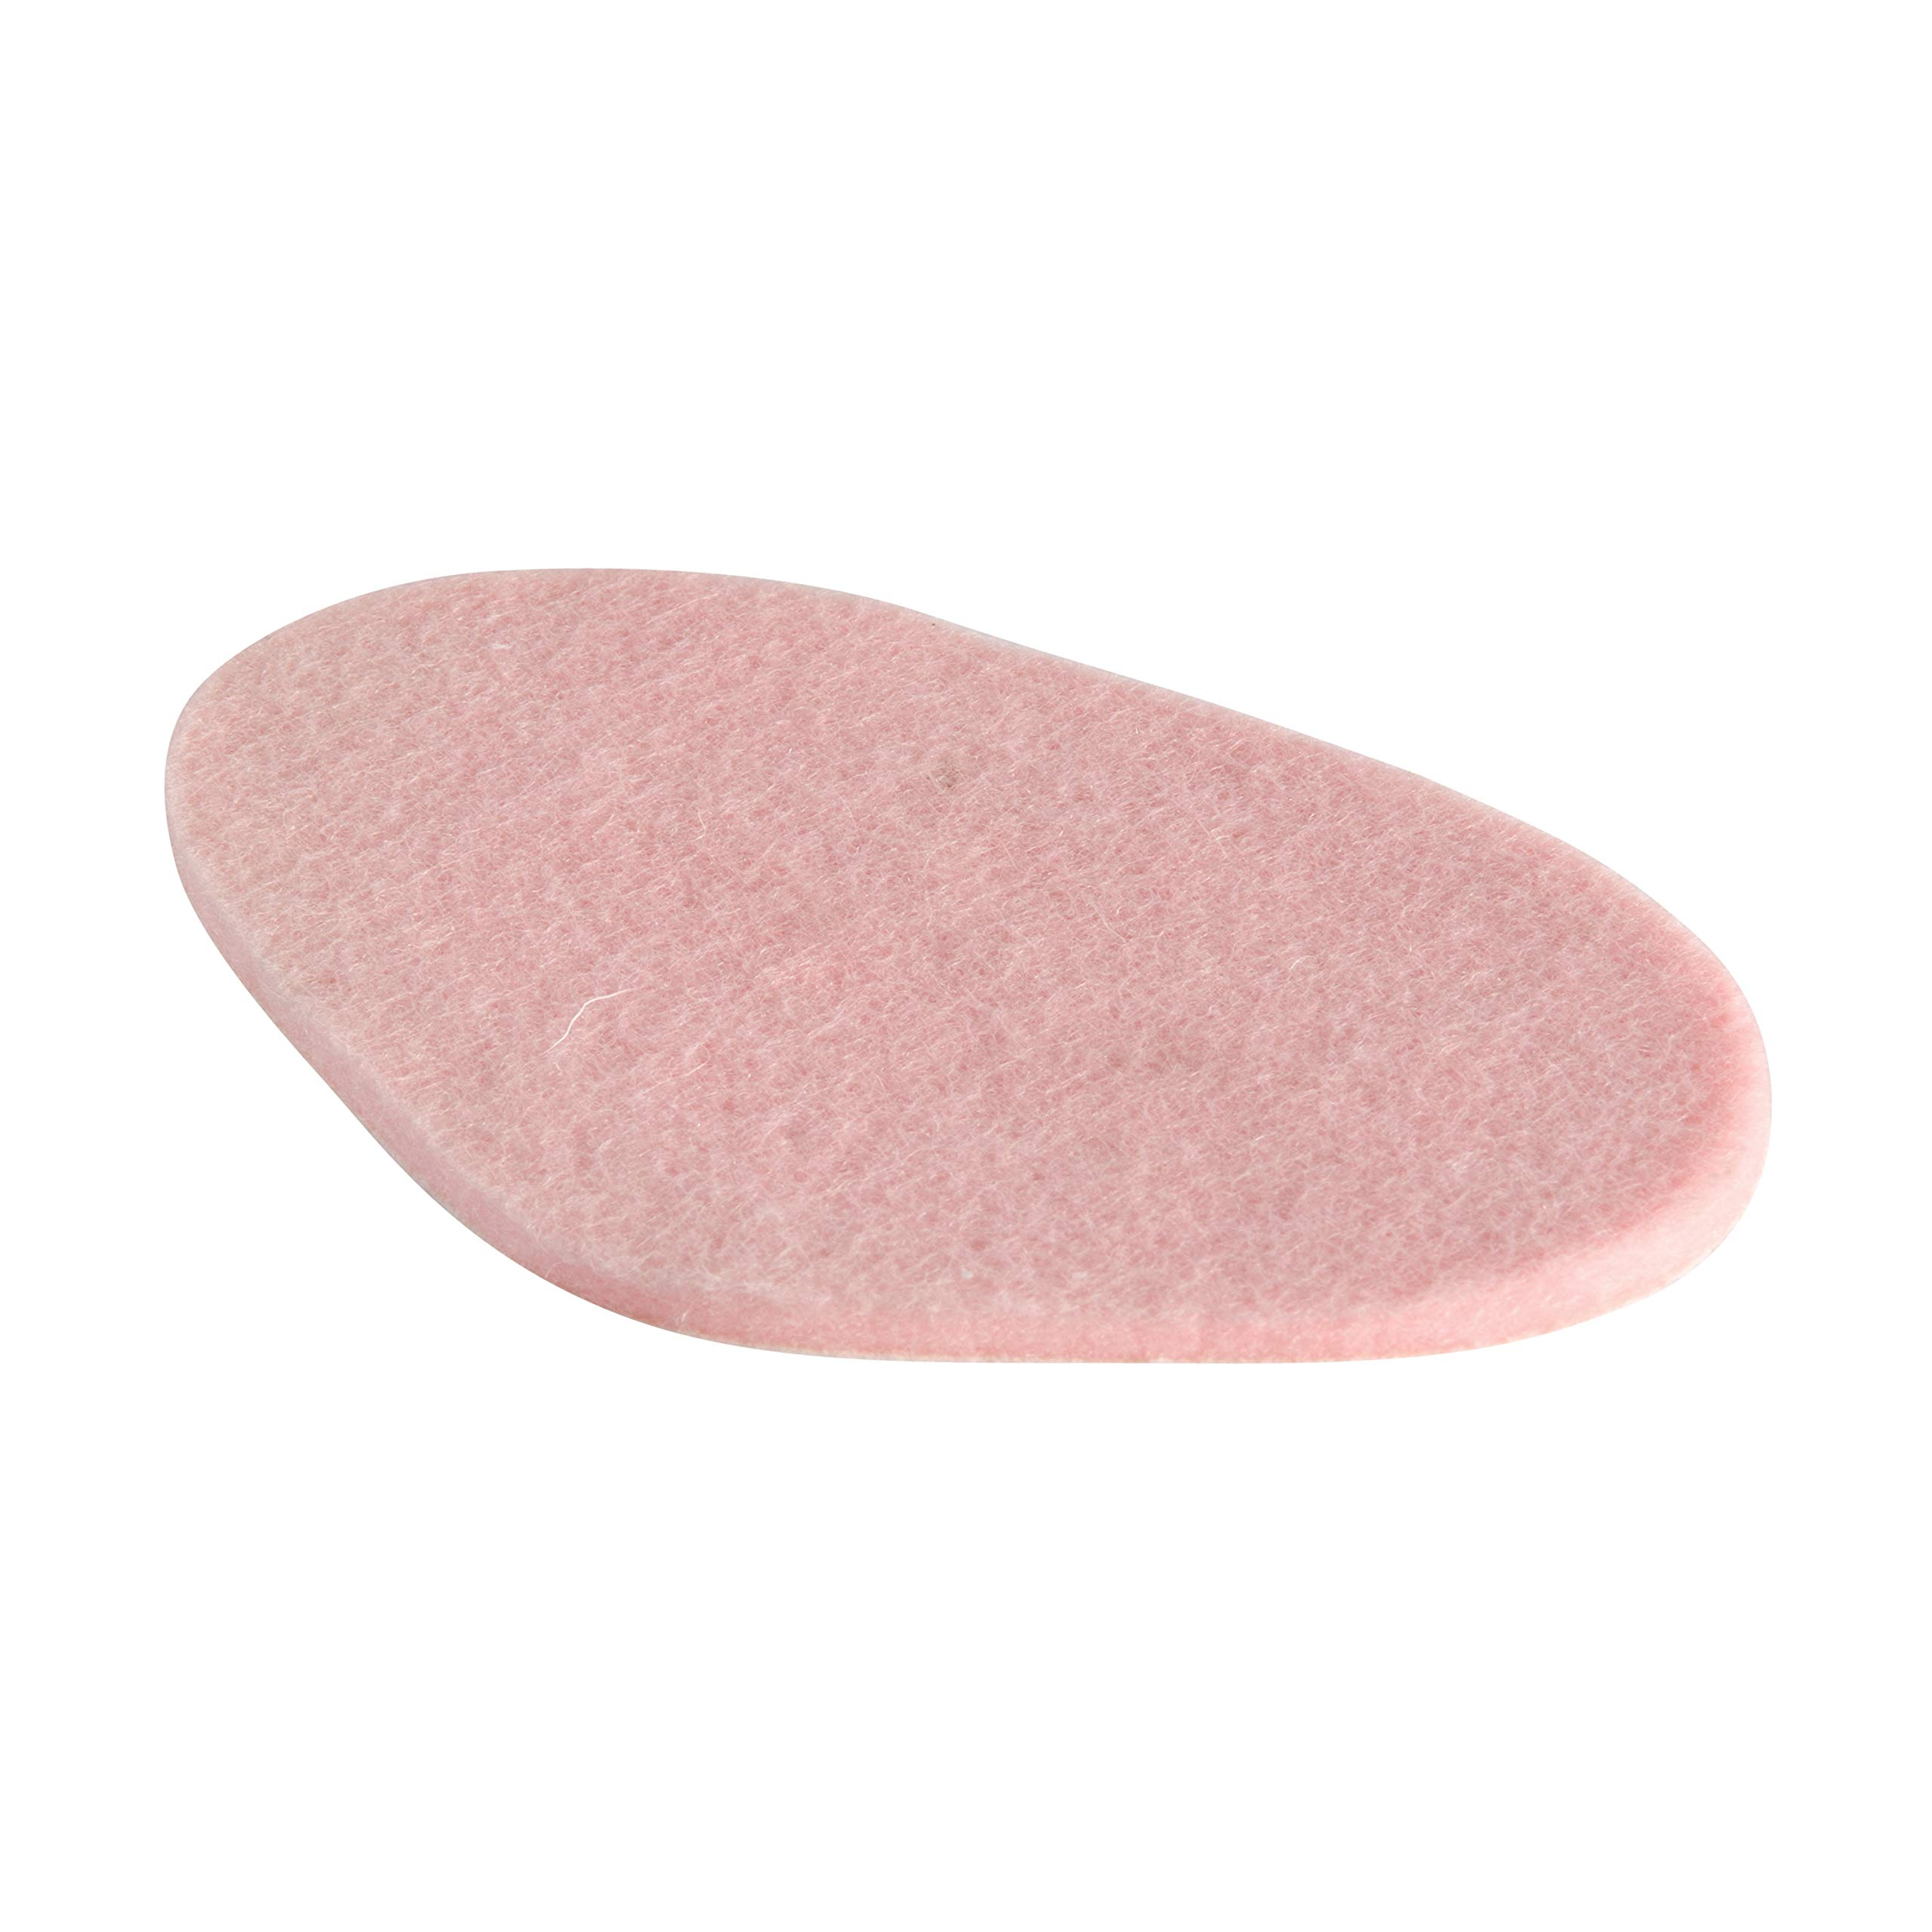 Steins 1/8 Inch Adhesive Felt No.23 Pads, 100 Count